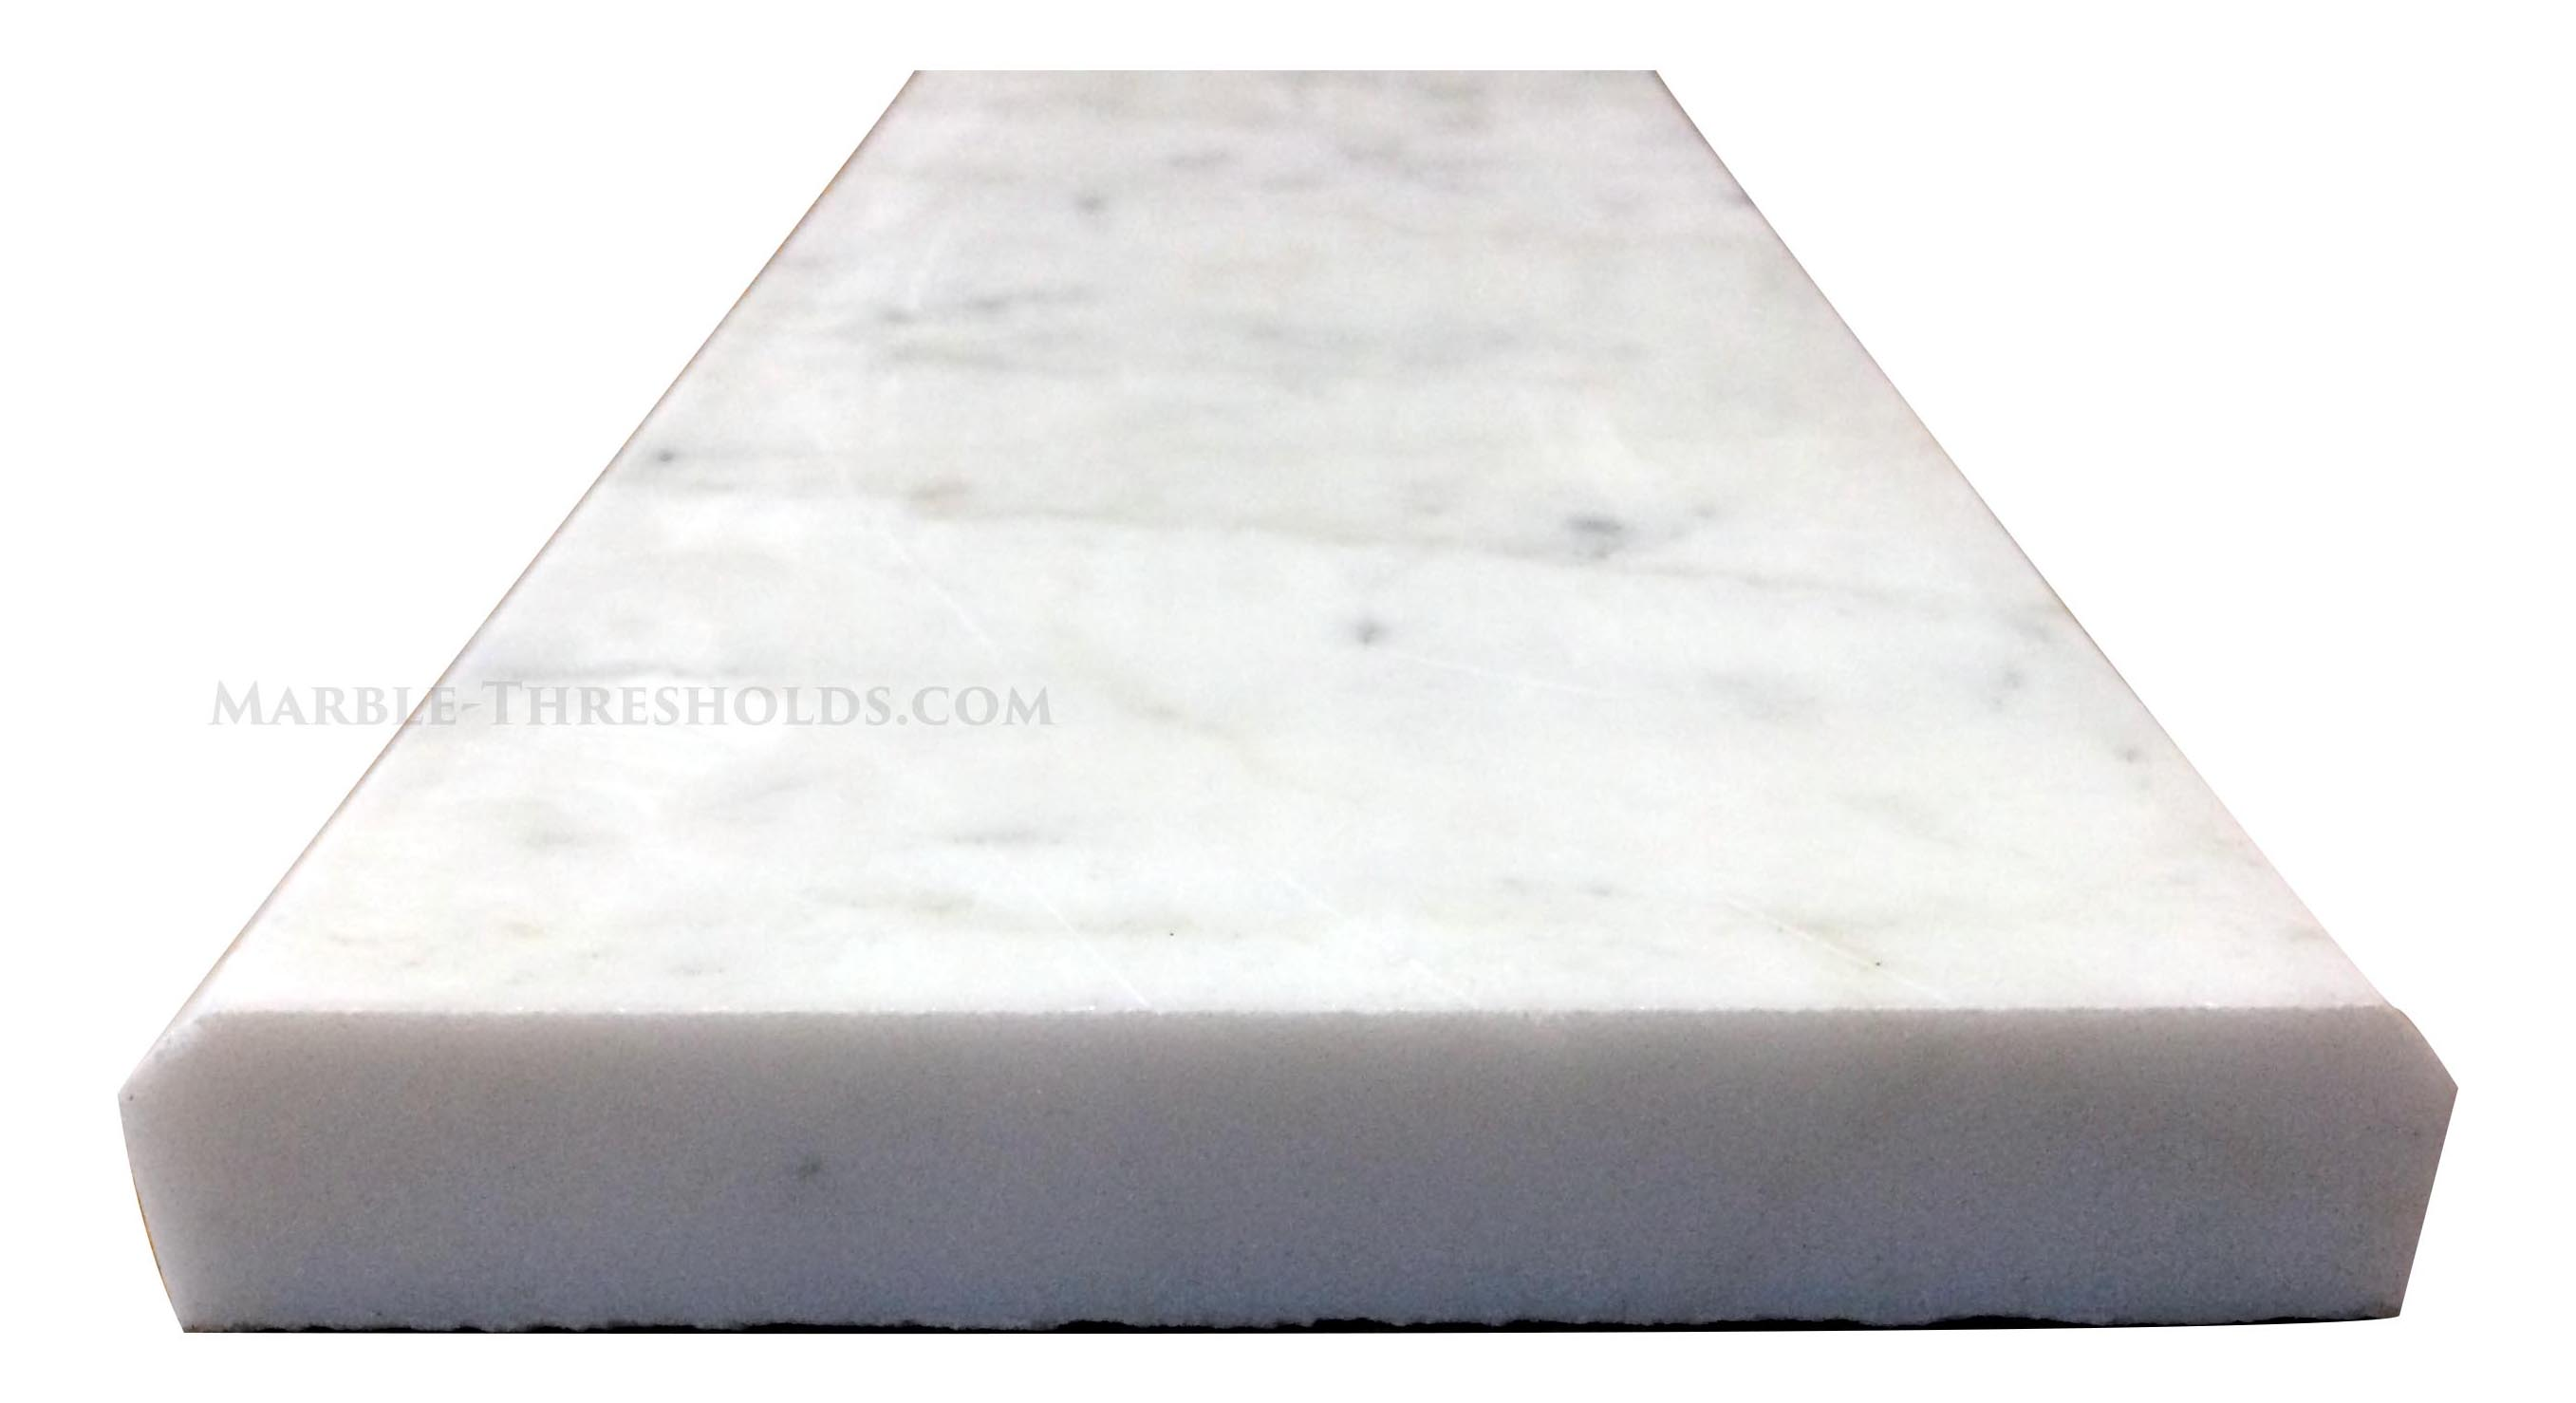 white carrara marble threshold u2013 size 48 x 6 x 34 inches - White Carrara Marble